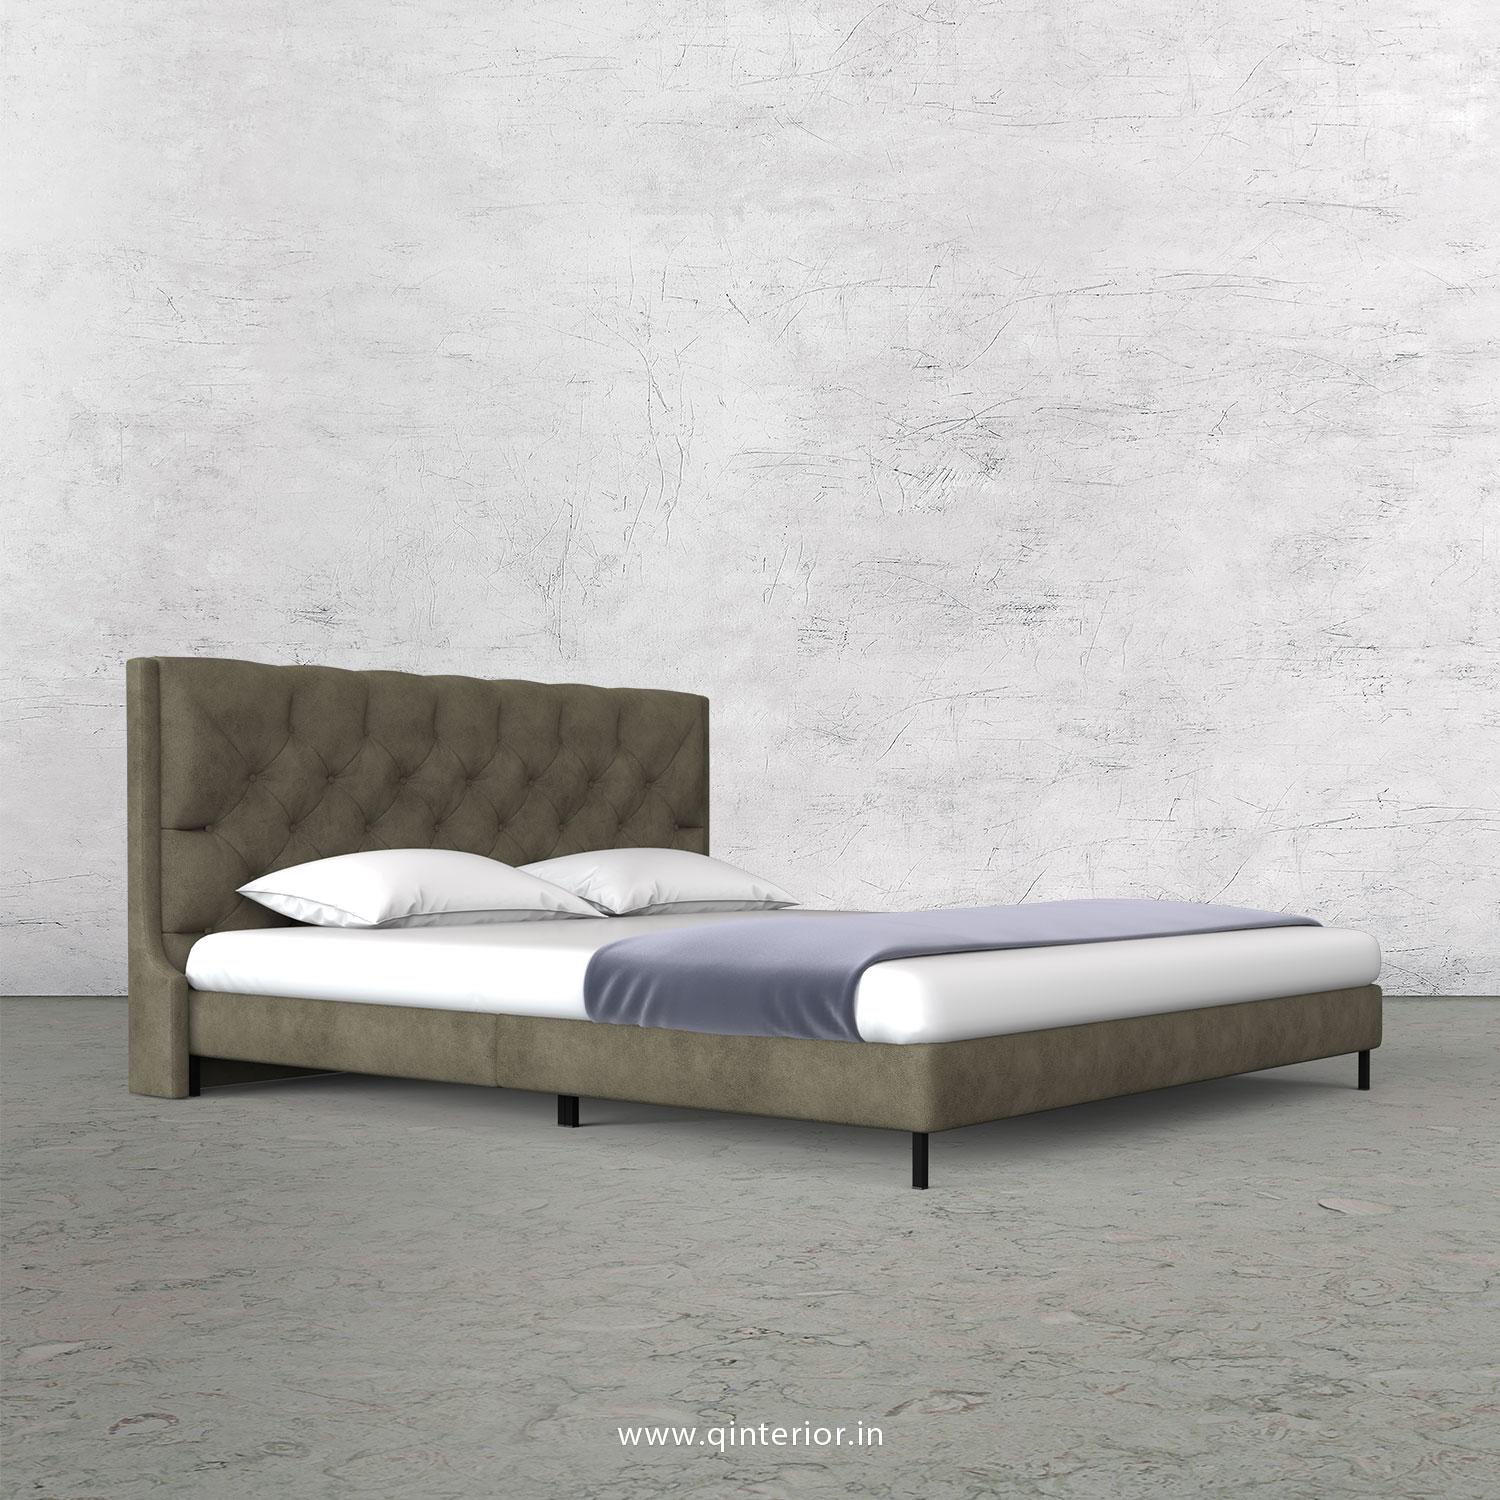 Scorpius Queen Size Bed with Fab Leather Fabric - QBD003 FL03